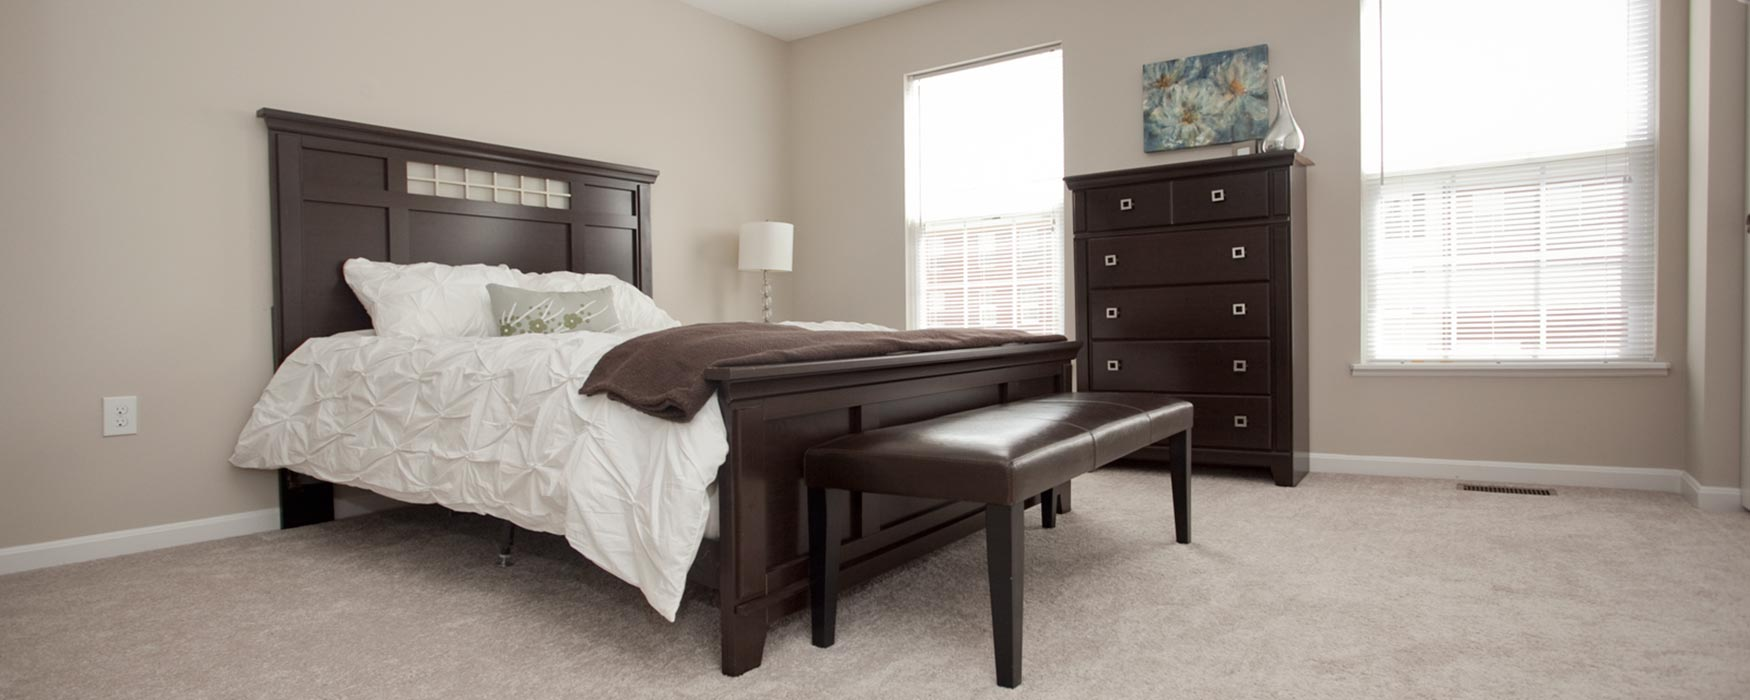 Lifestyle Communities | Bentley II Bedroom